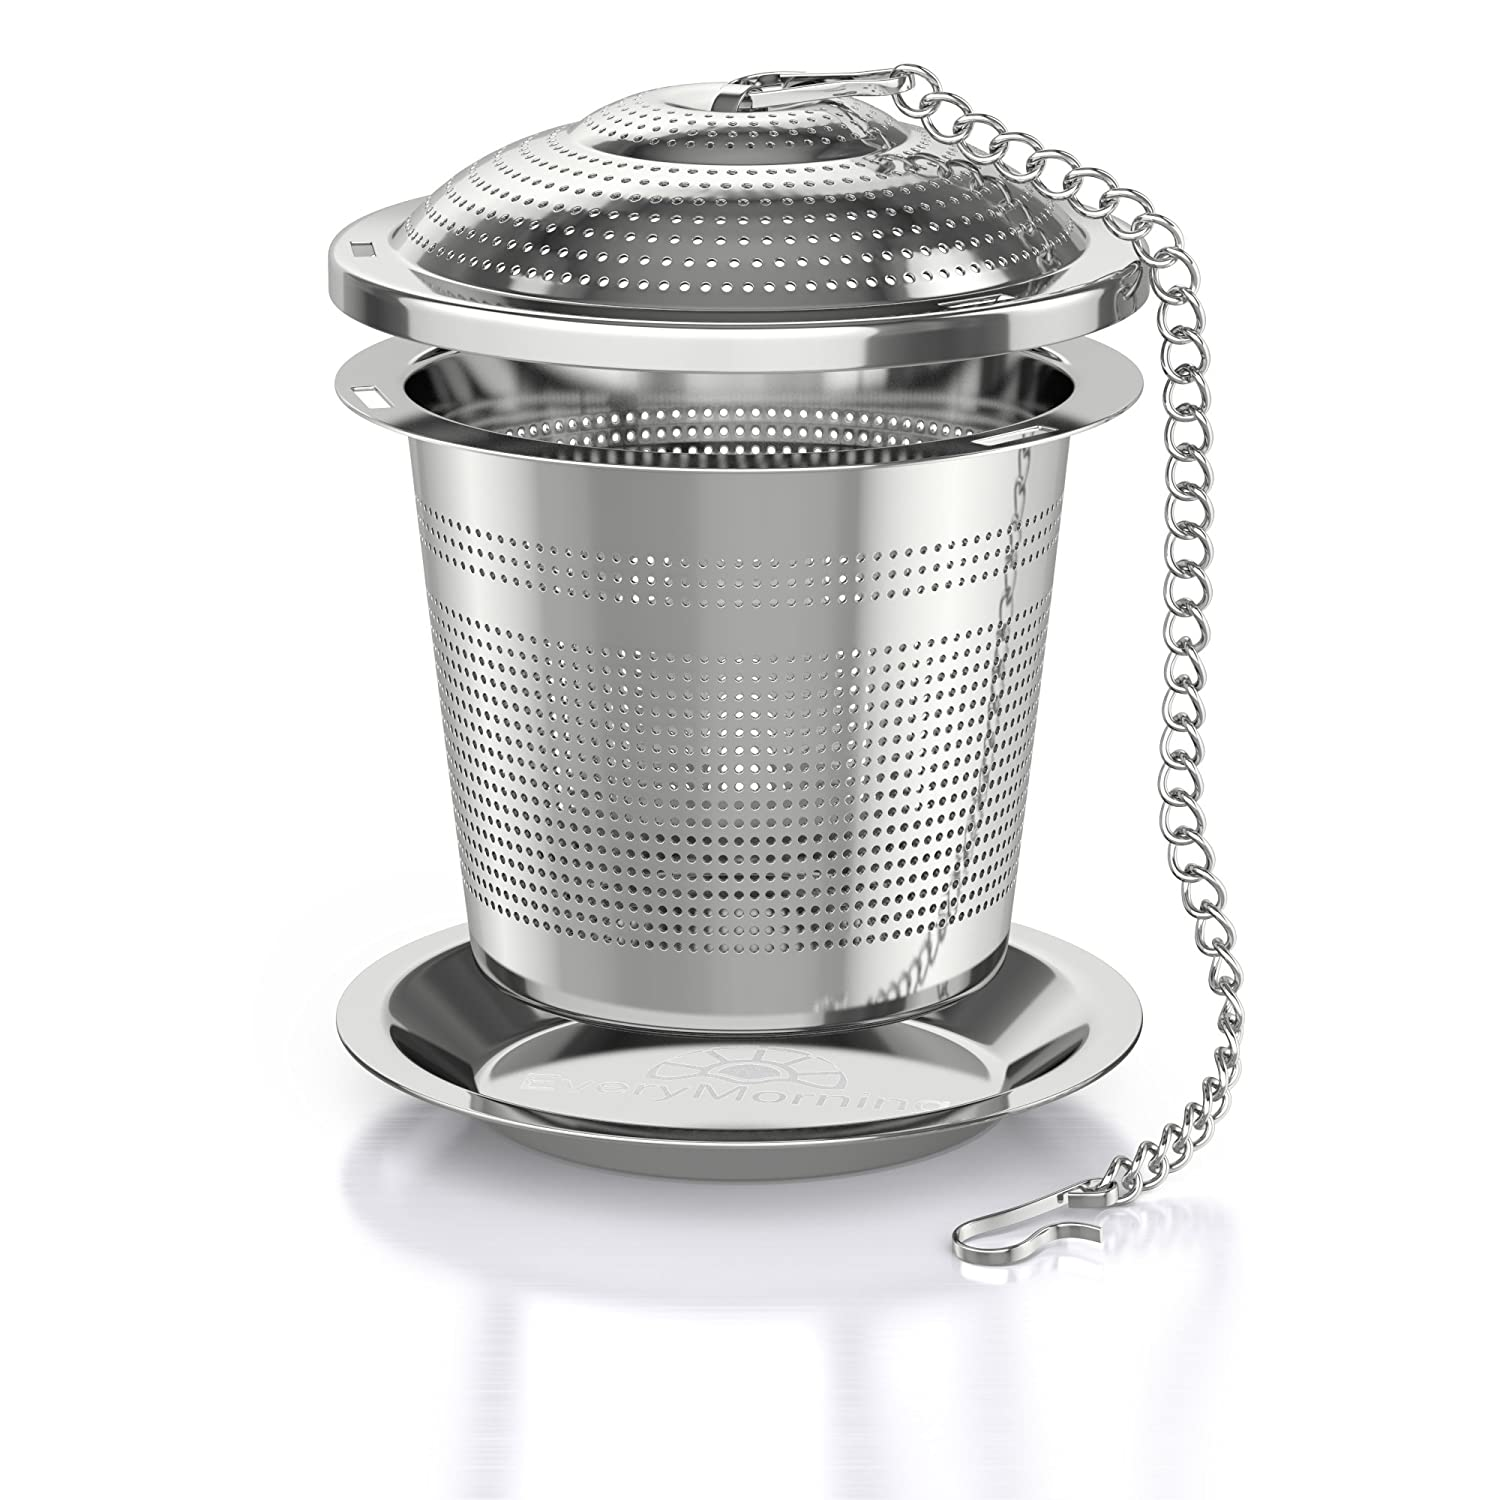 Deluxe Tea Infuser for Loose Leaf Tea Single or Multi Cup Stainless Steel Strainer